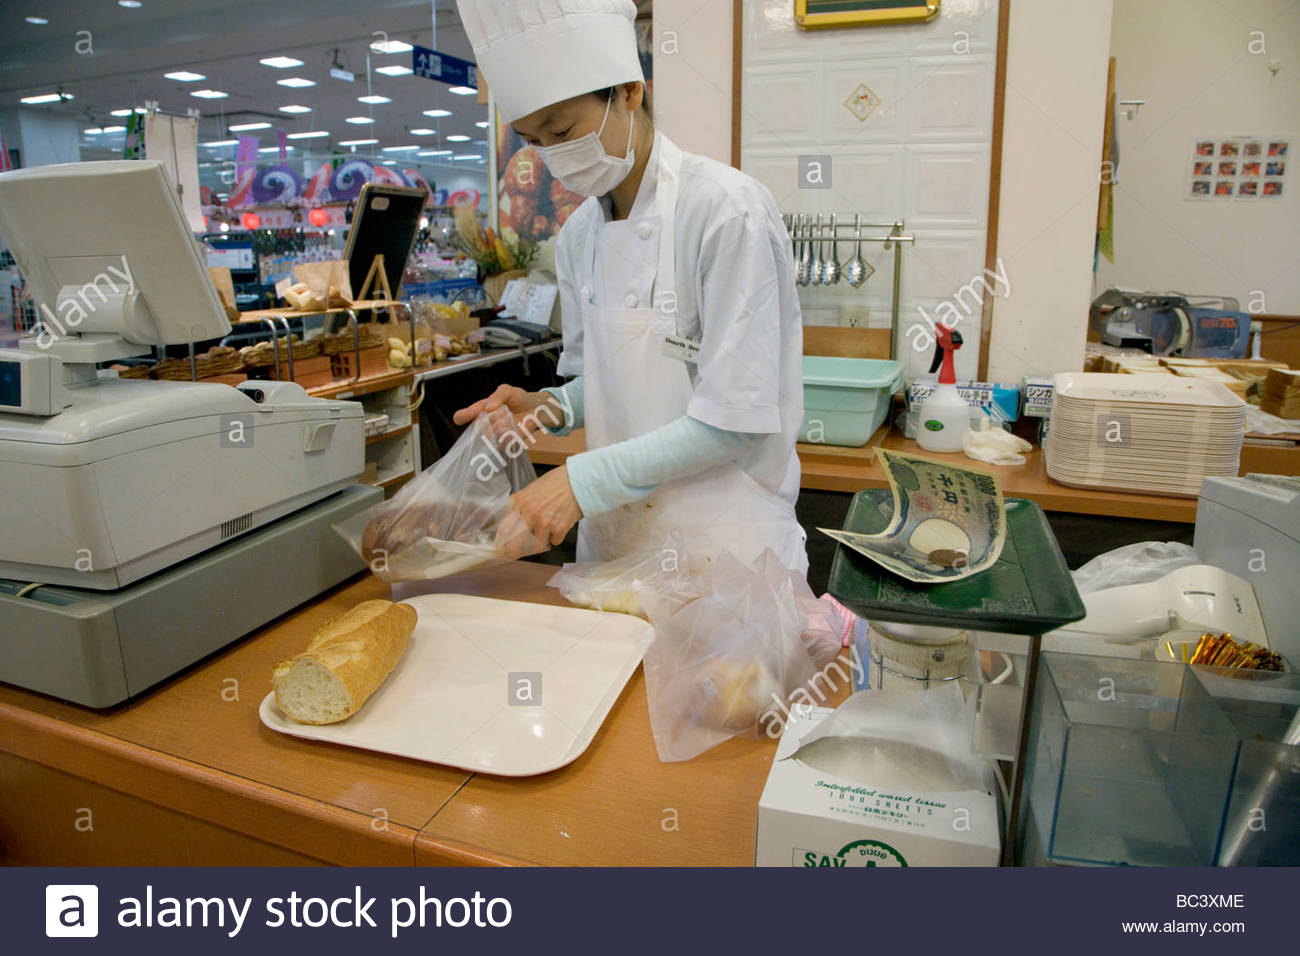 bakery corner in a Tokyo supermarket - Stock Image